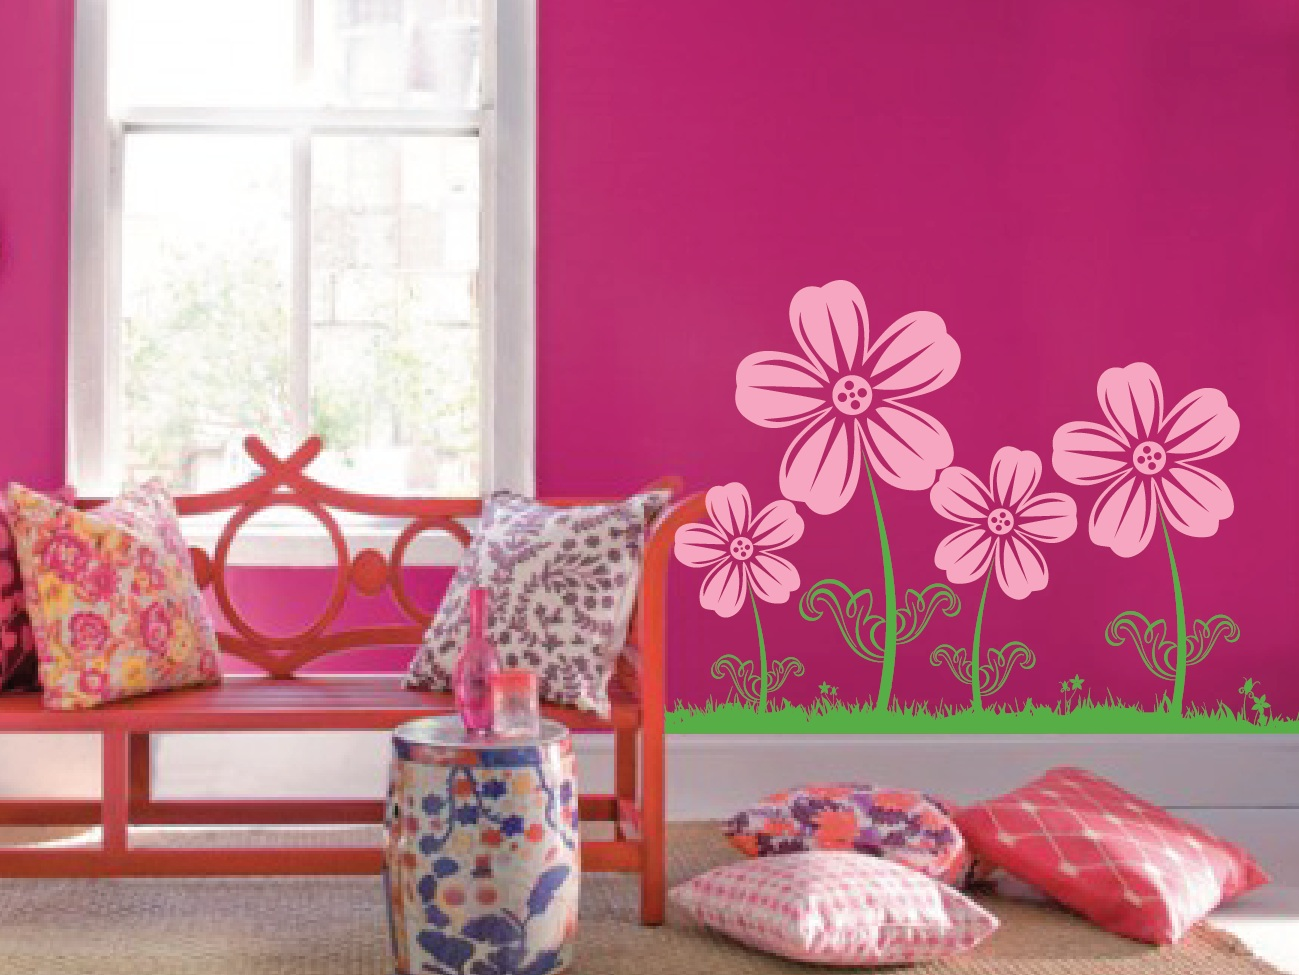 Large wall flower nursery decal 1123 innovativestencils flower floral wall decal for girls room with amipublicfo Images